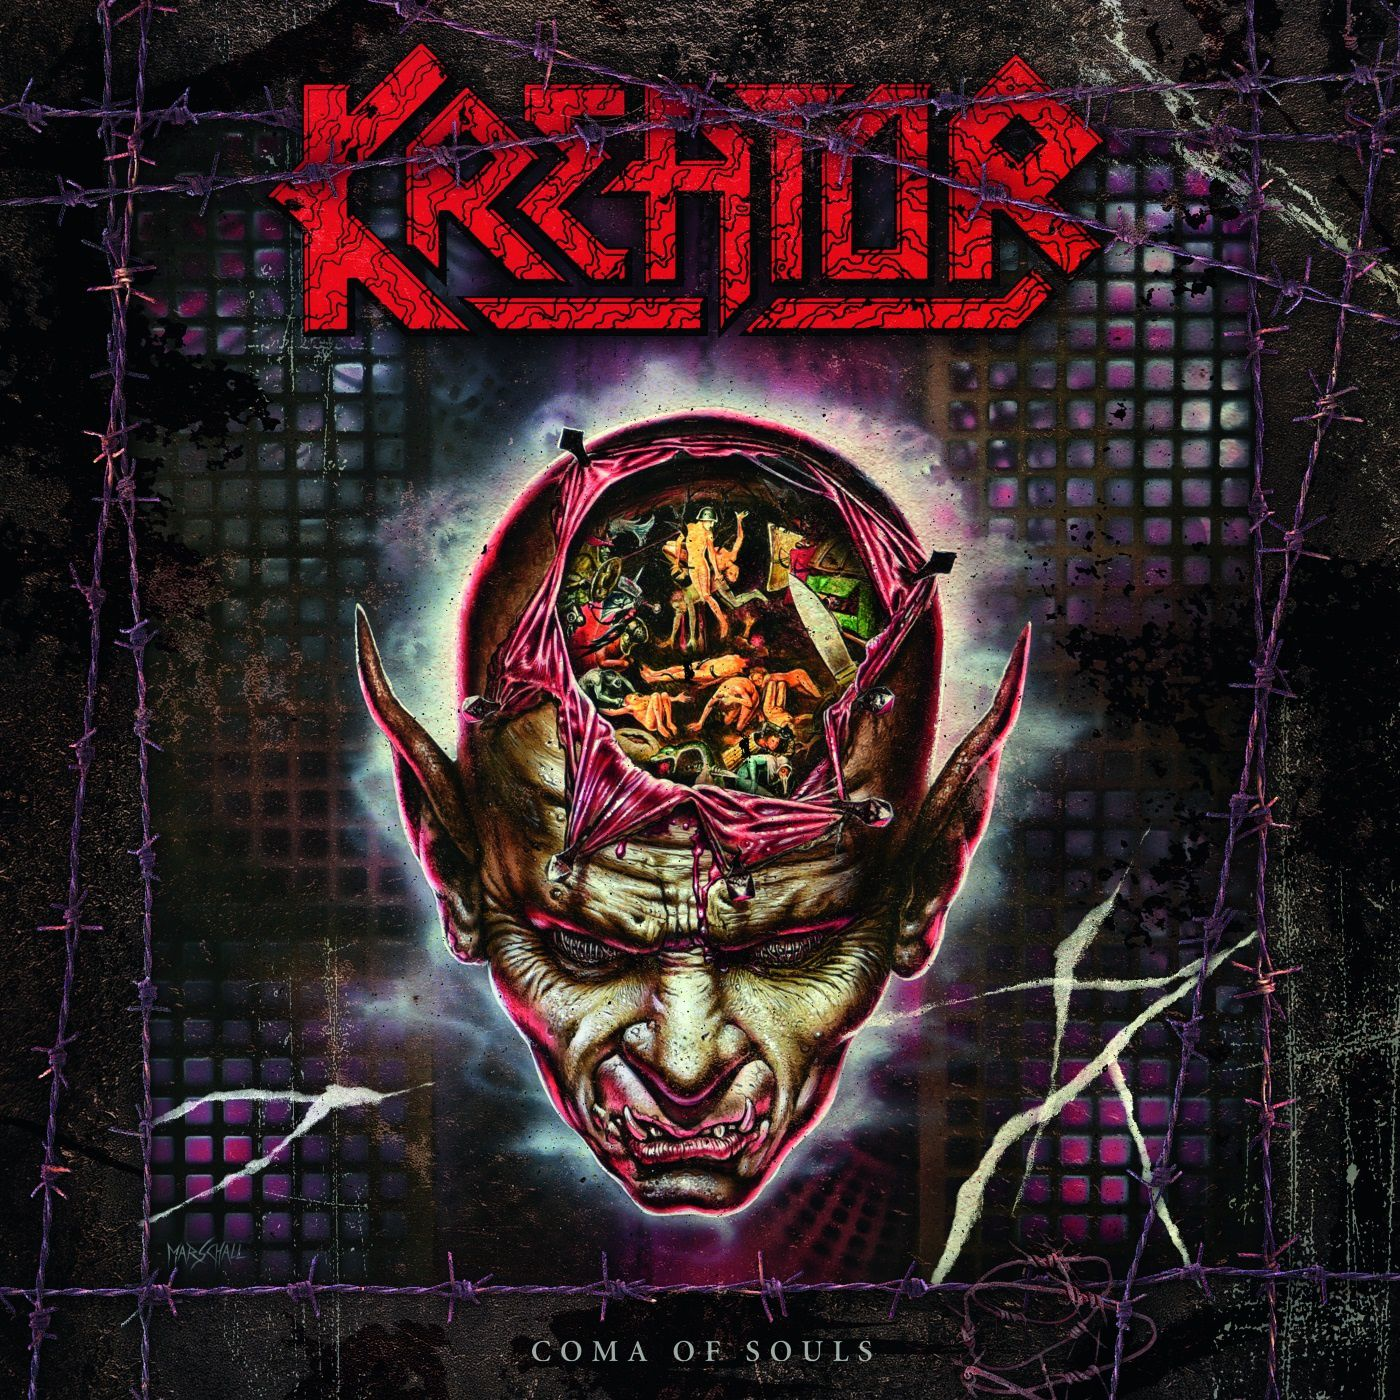 """CD review KREATOR """"Coma of Souls"""" / """"Renewal"""" / """"Cause of Conflict"""" / """"Outcast"""" - reissues"""